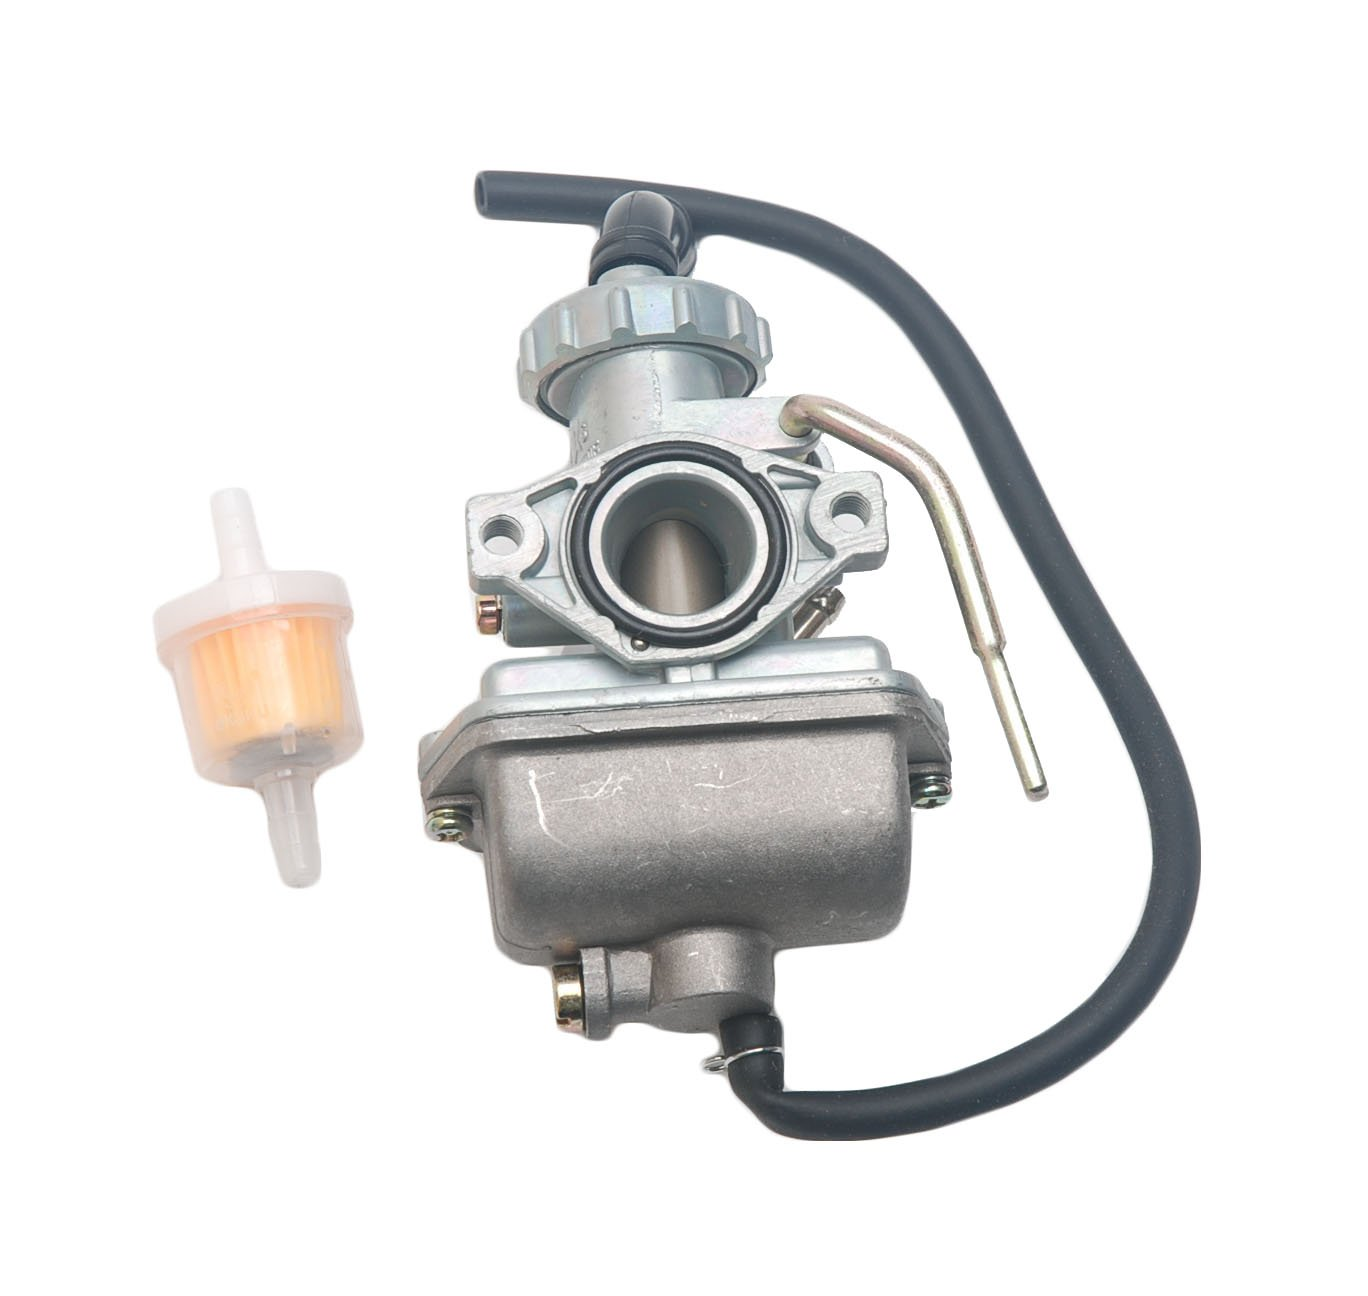 HIFROM Replace Carburetor Carb Fits for Honda XR80R XR 80 R 1985-2003 New Carb